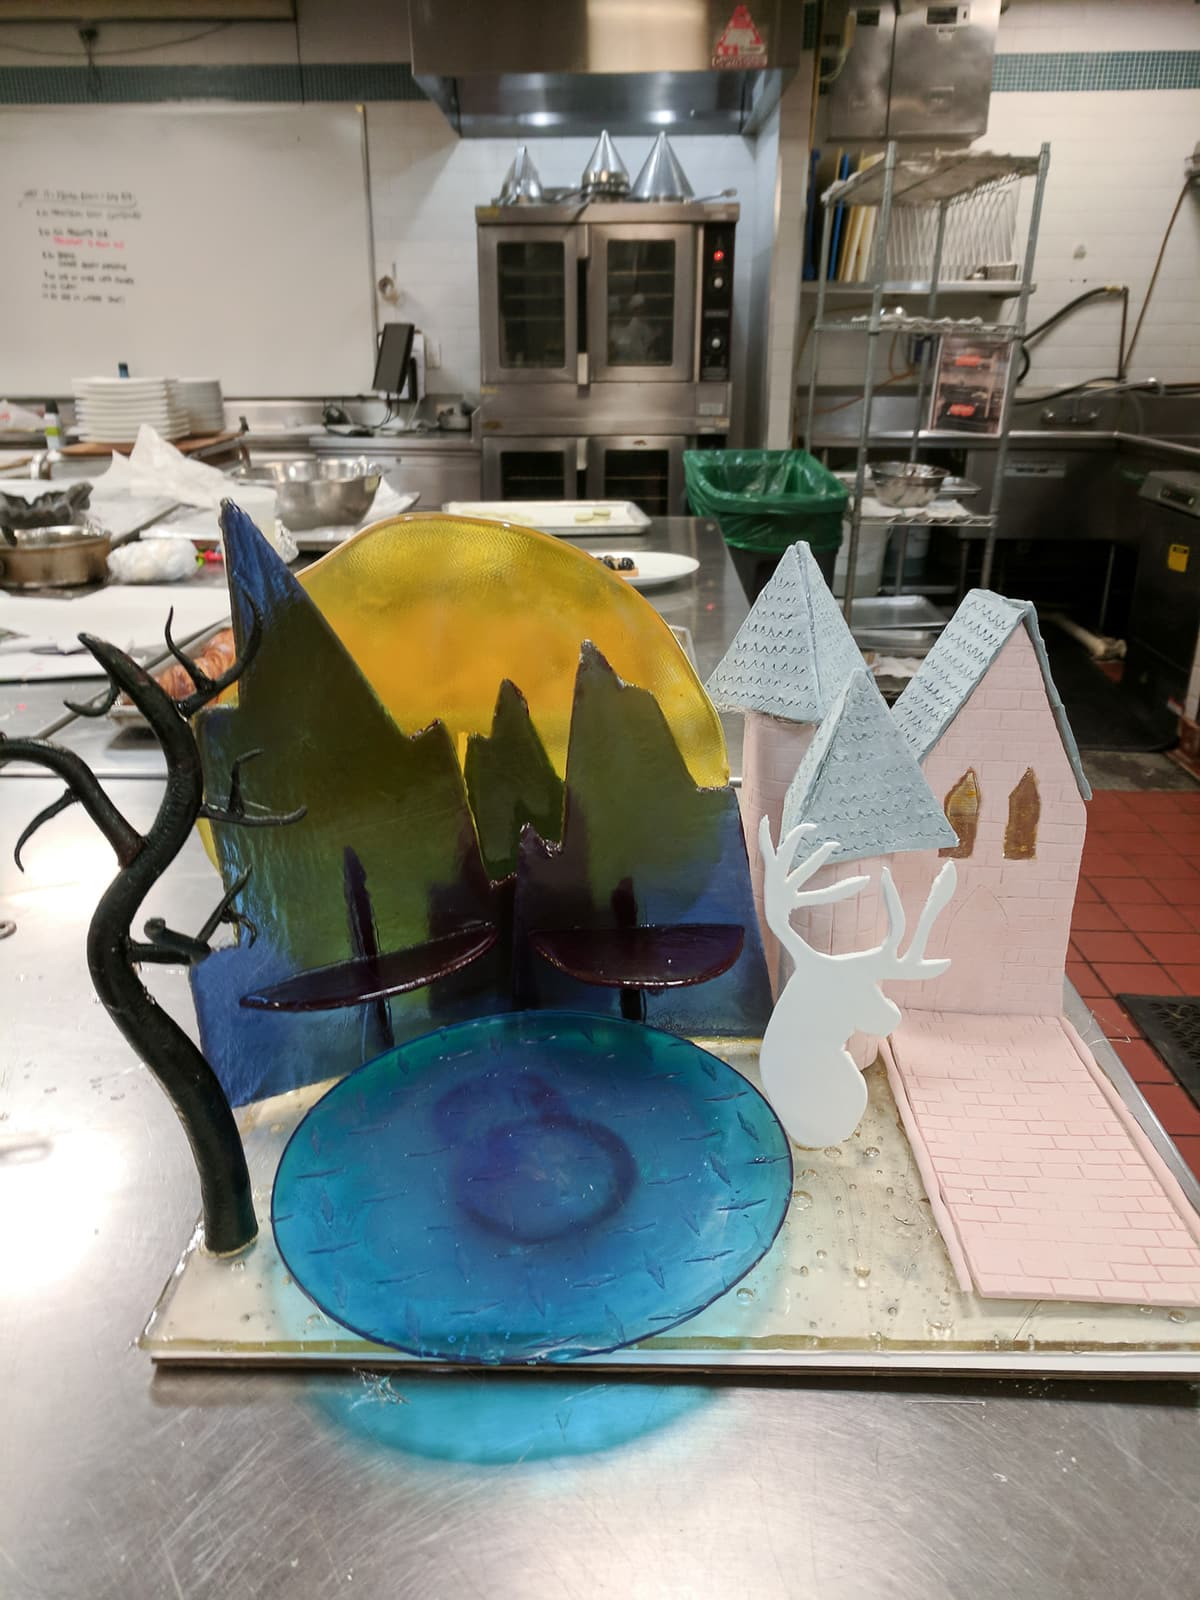 Sugar showpiece with mountains, lake, and castle